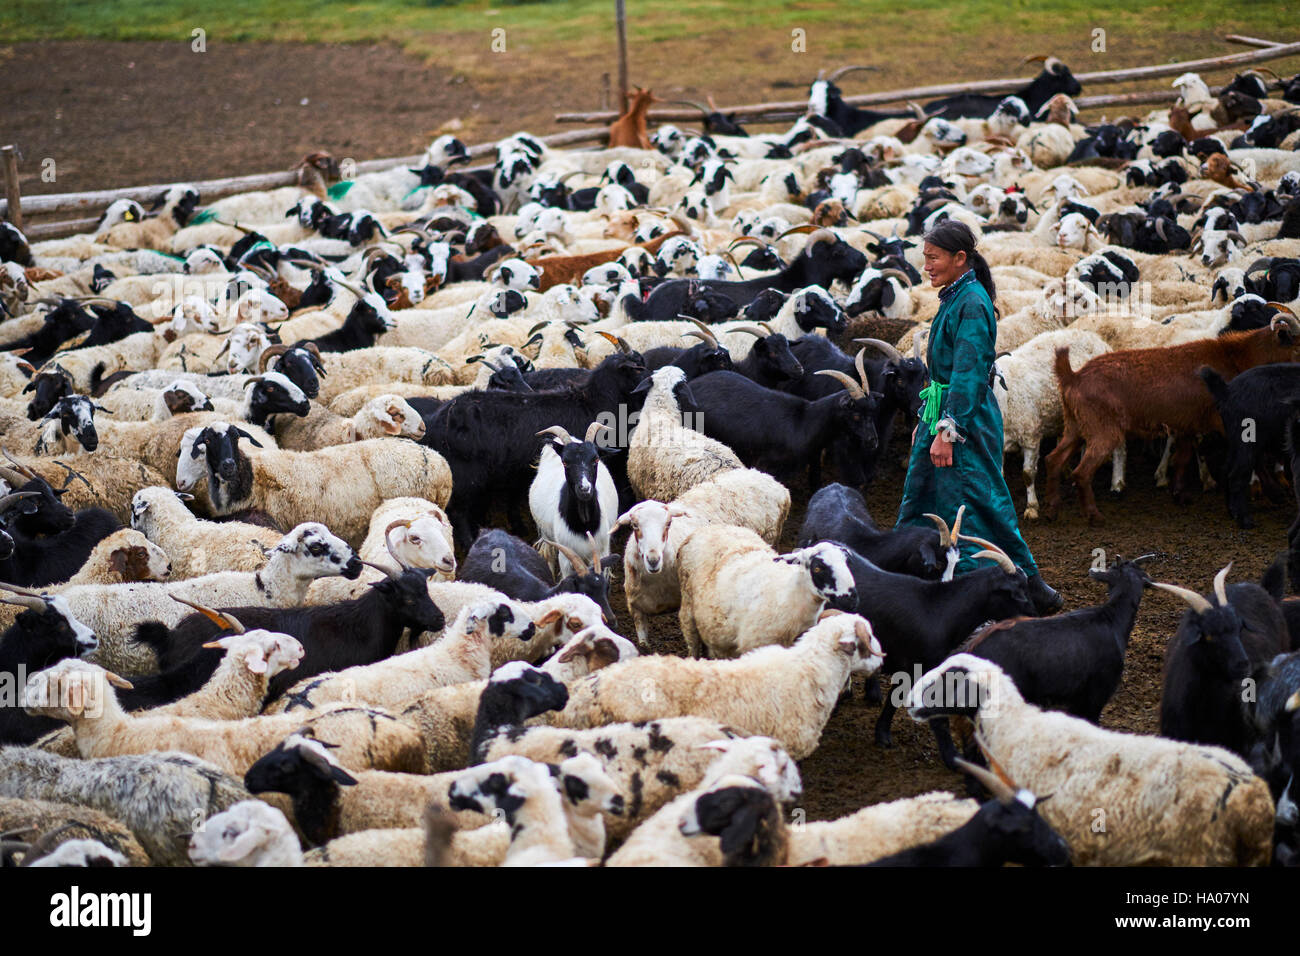 Mongolia, Arkhangai province, nomad camp, sheep herd Stock Photo